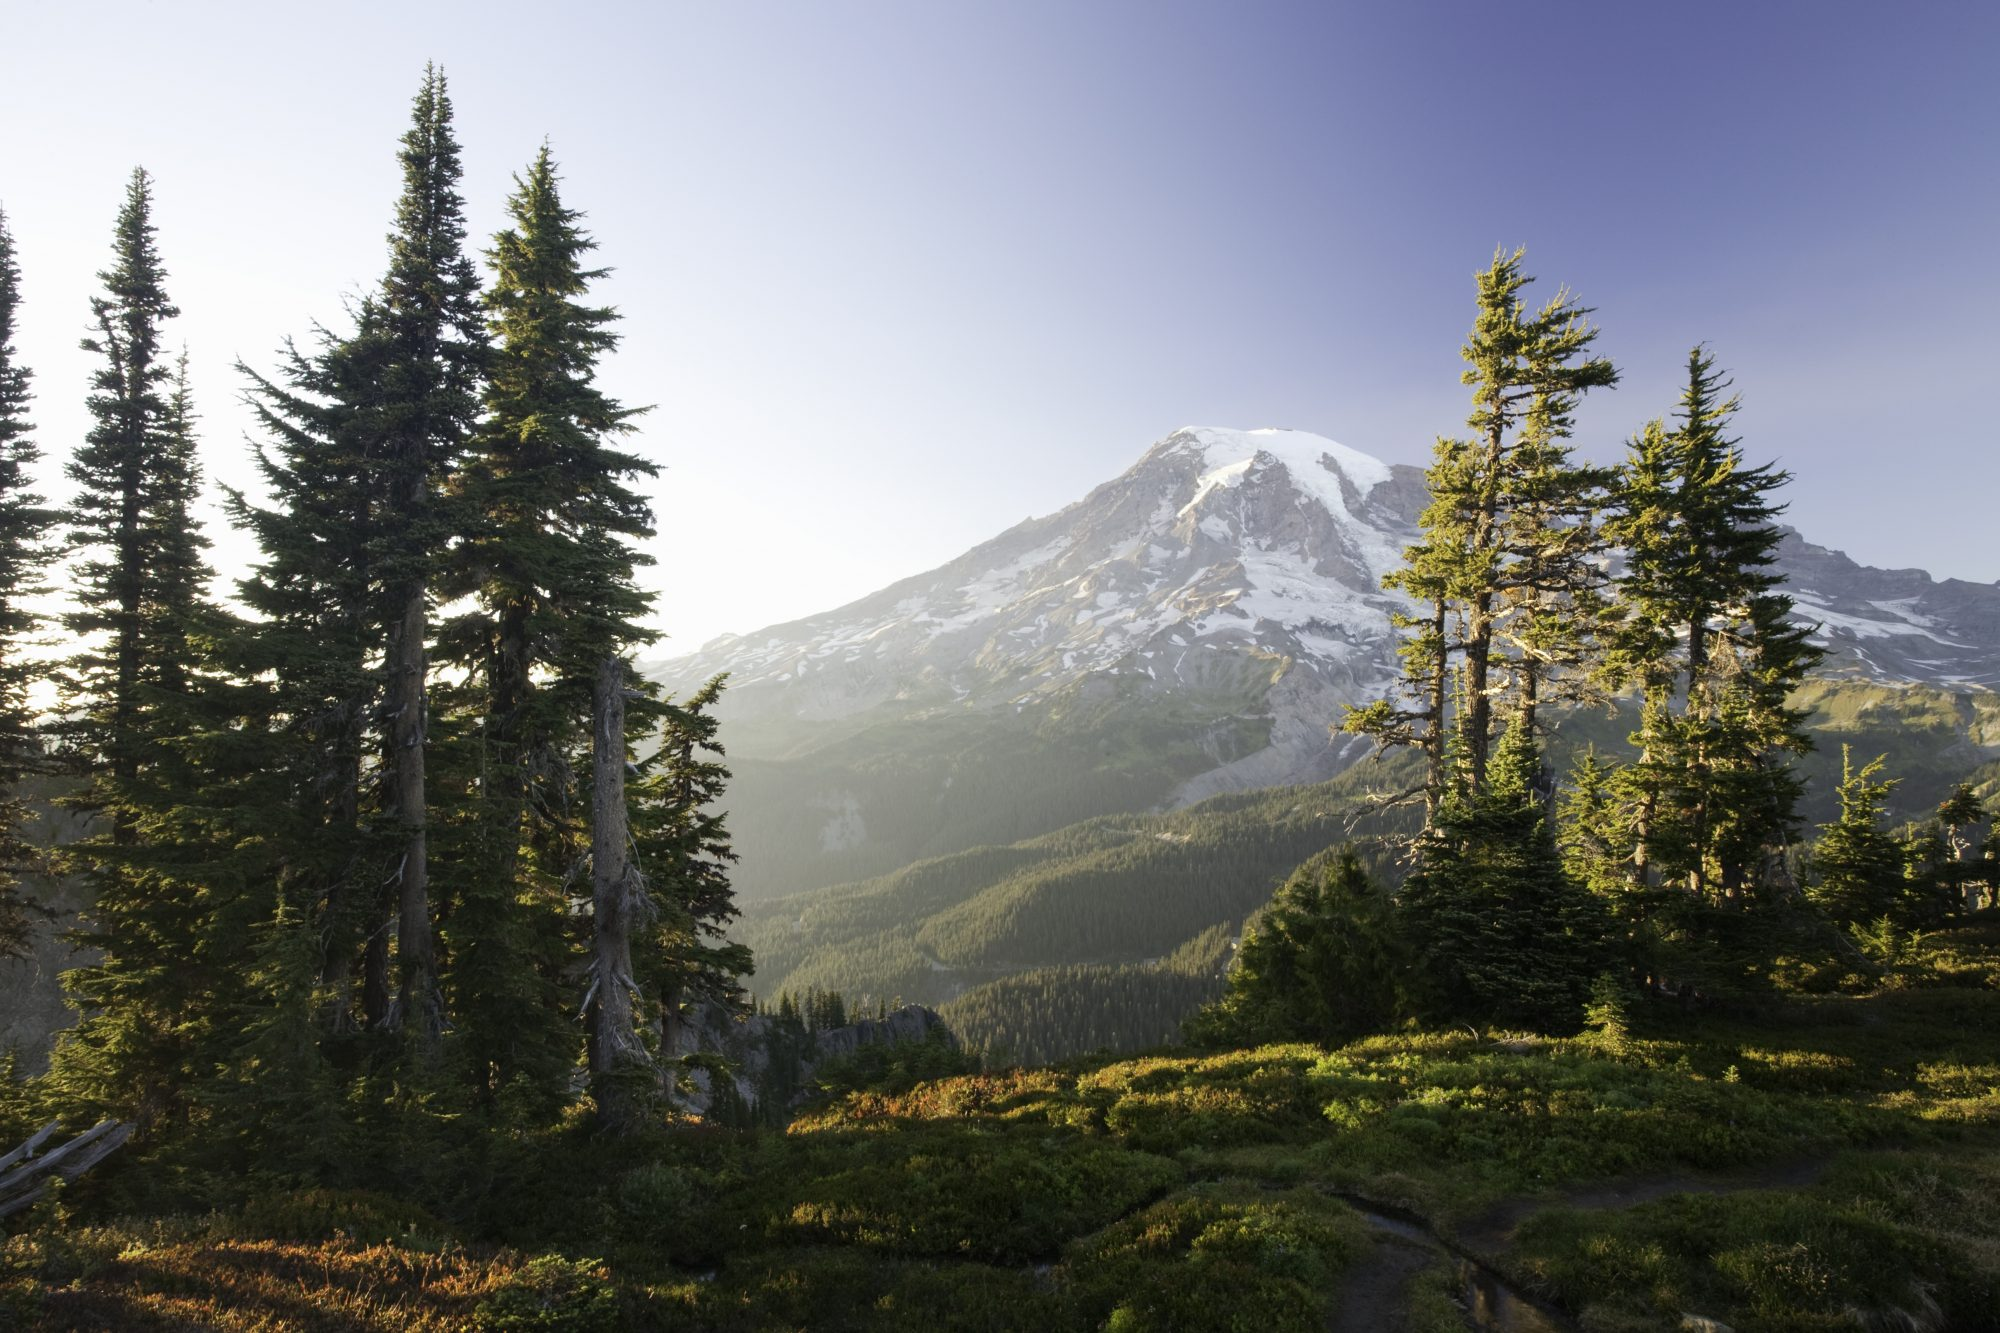 Mount Rainier and Alpine Forest at Sunset